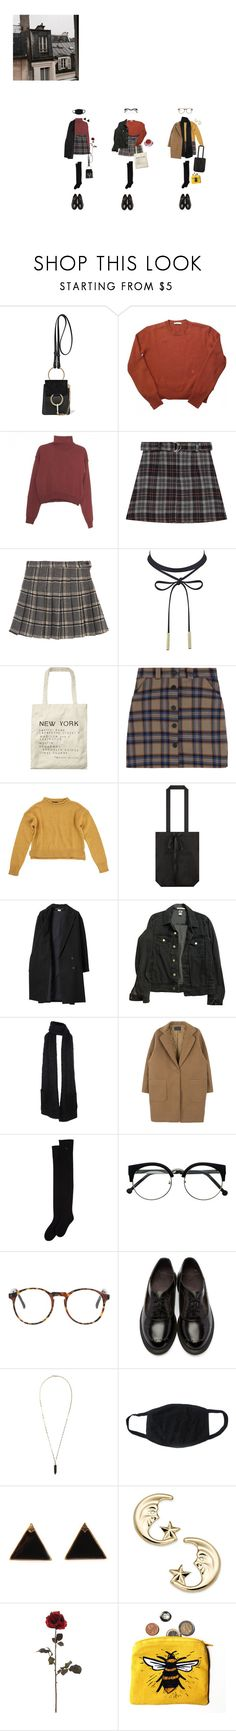 """pretty fallen leaves"" by eggpuffs ❤ liked on Polyvore featuring Chloé, Wood Wood, Scotch & Soda, Topshop, Les Prairies de Paris, American Apparel, Dorothee Schumacher, Dr. Martens, Isabel Marant and Prada"